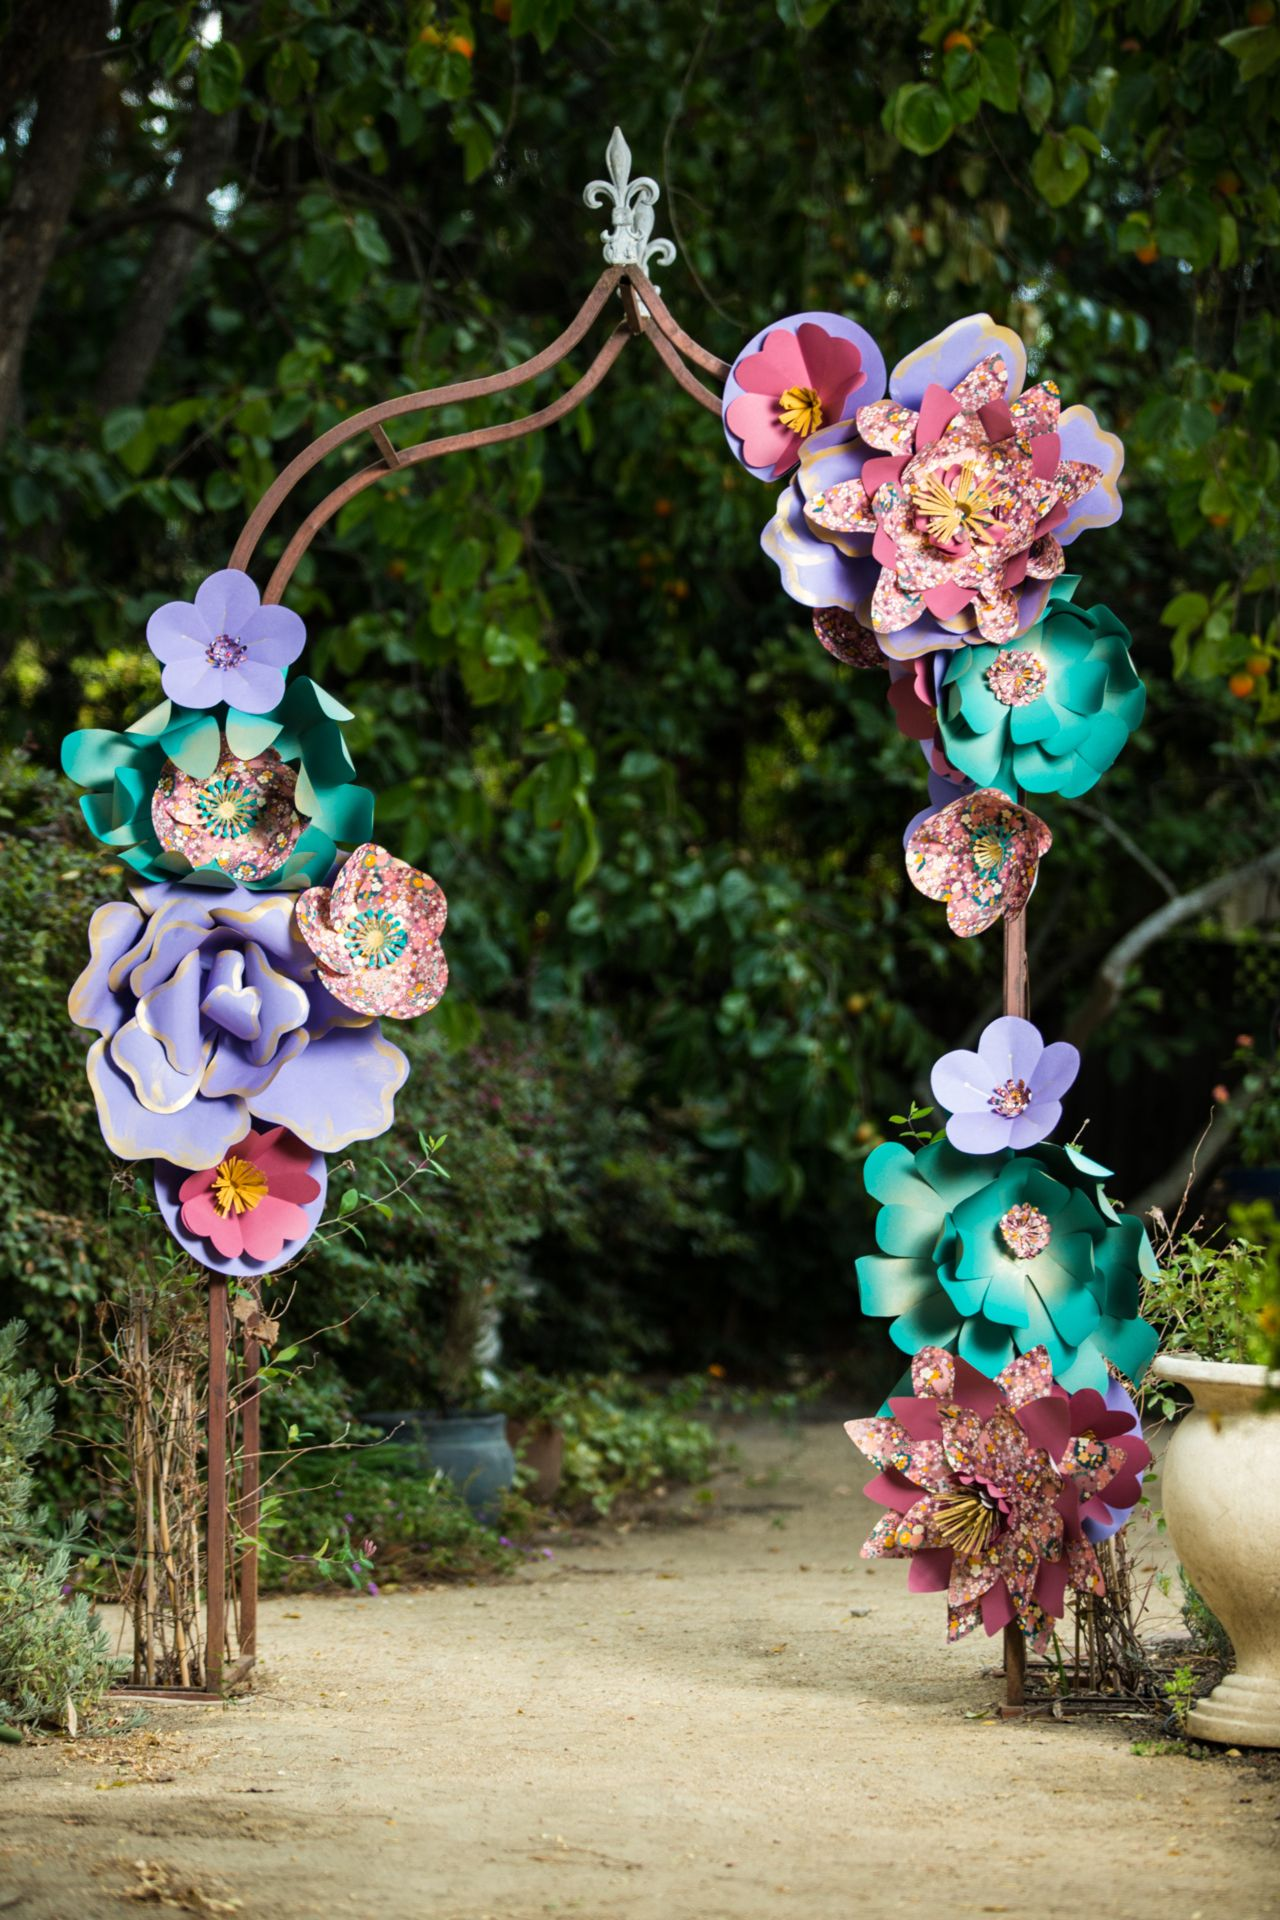 Giant paper flower garden arch using japanese chiyogami yuzen washi giant paper flower garden arch using japanese chiyogami yuzen washi paper mixed with colorful craft papers mightylinksfo Gallery